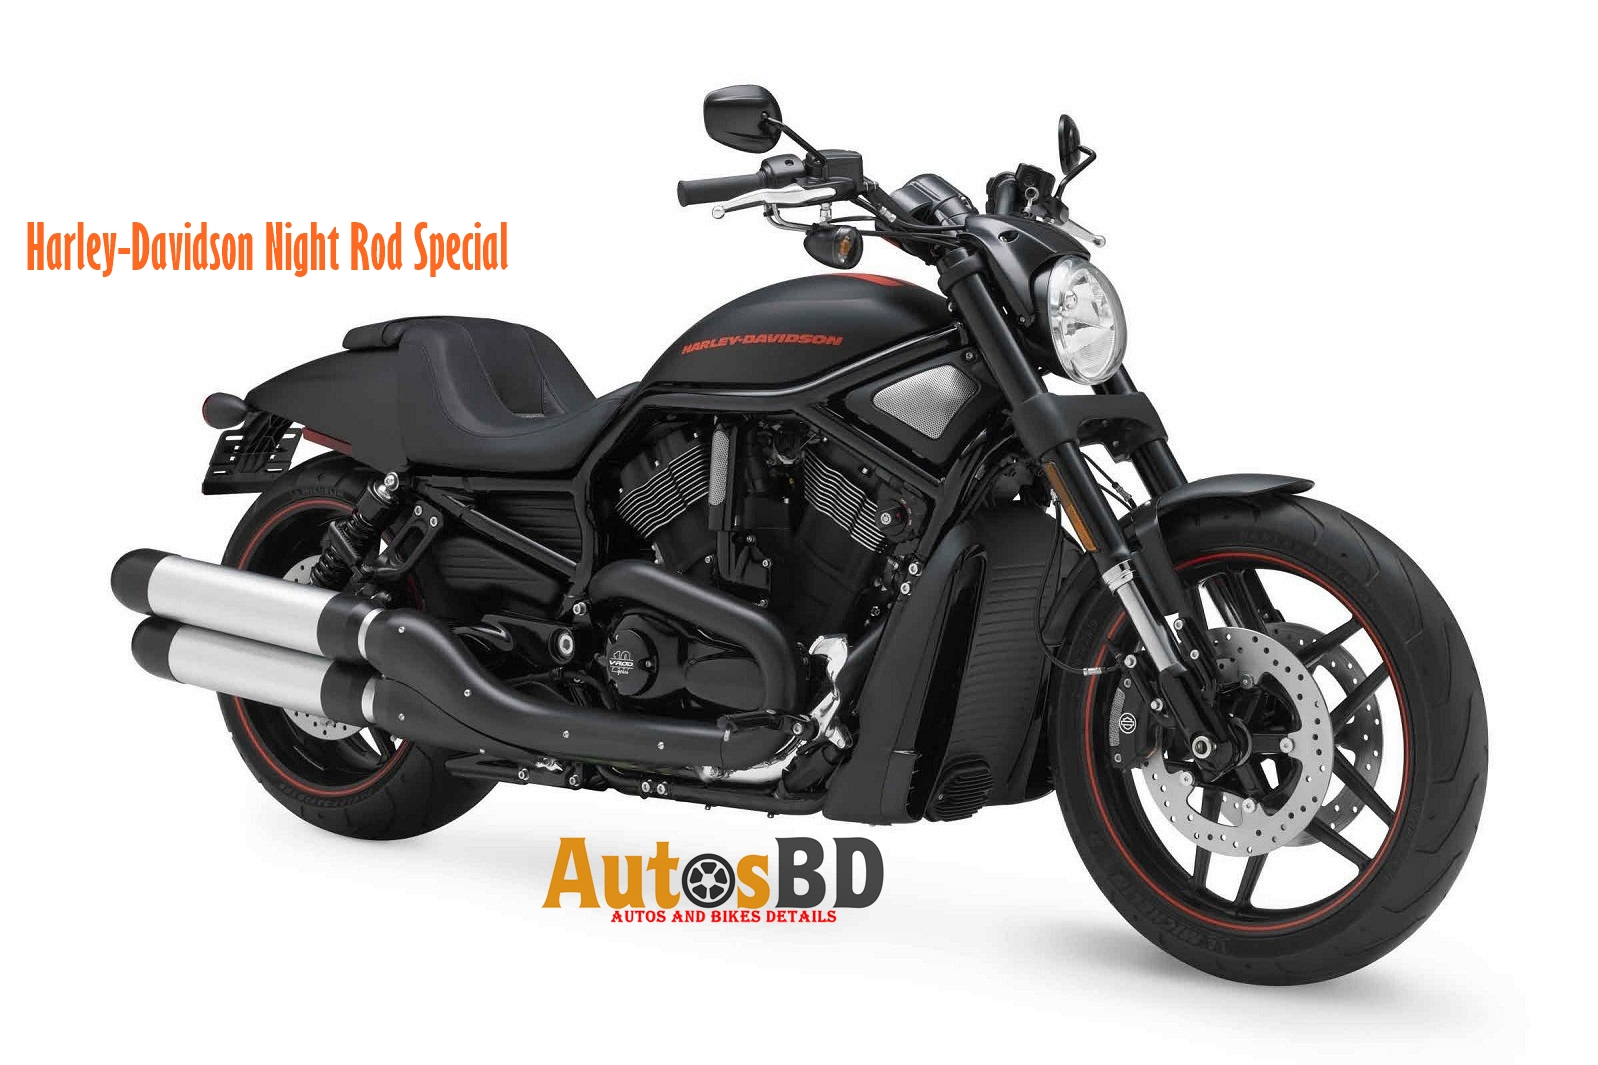 Harley-Davidson Night Rod Special Specification